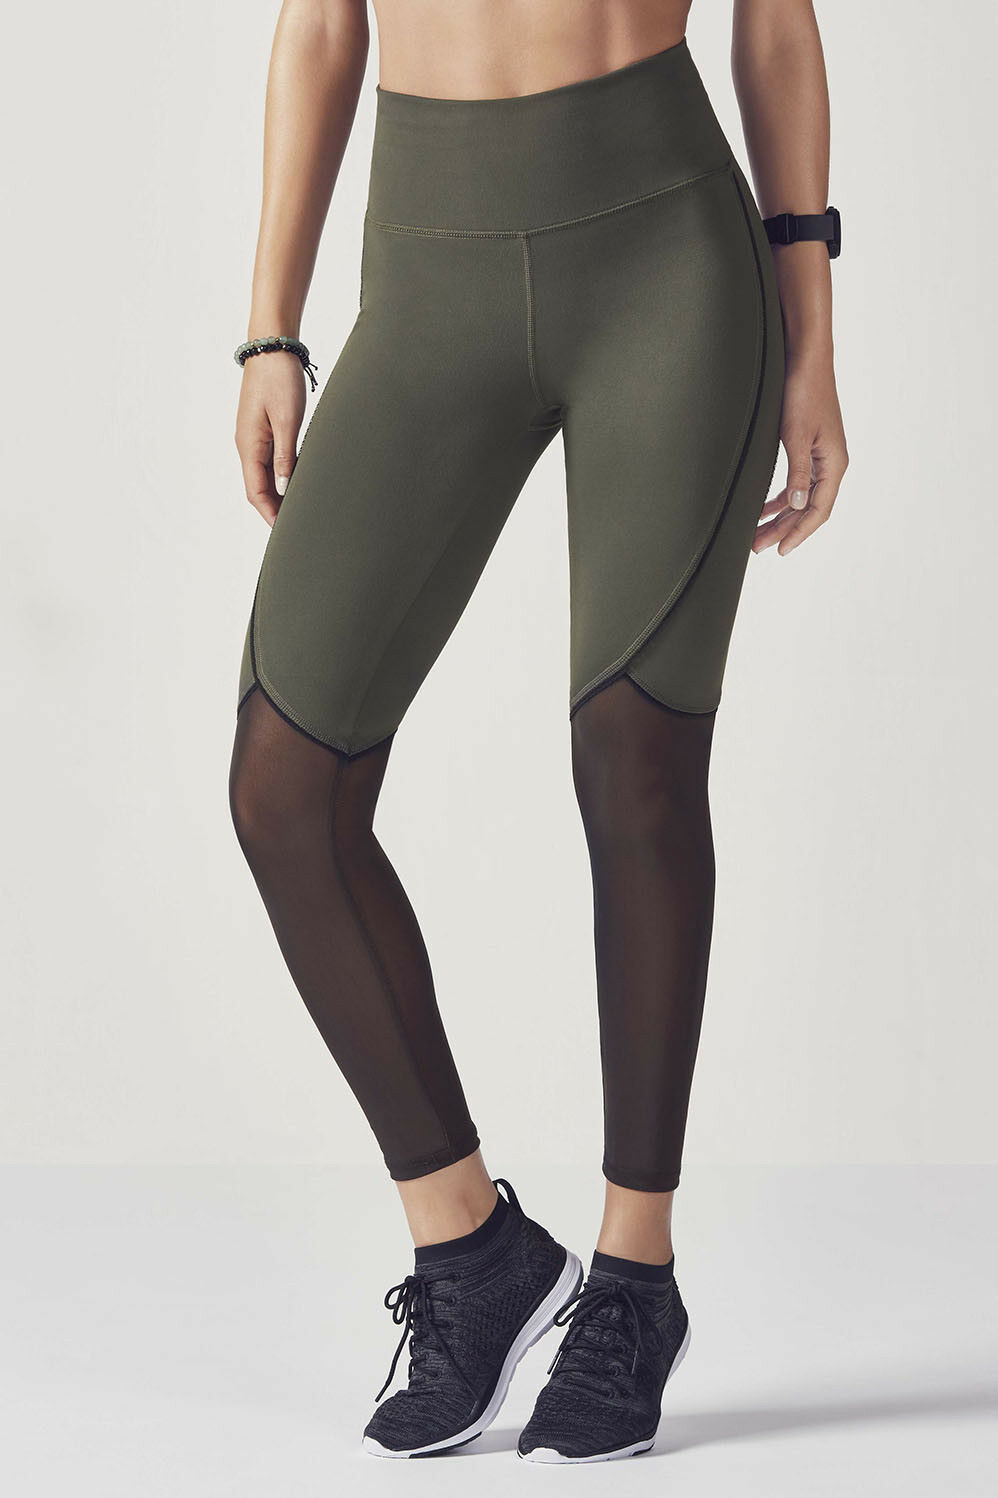 FABLETICS HADLEY HIGH-WAISTED 7 8 CAPRI, SIZE L, NEW, RRP